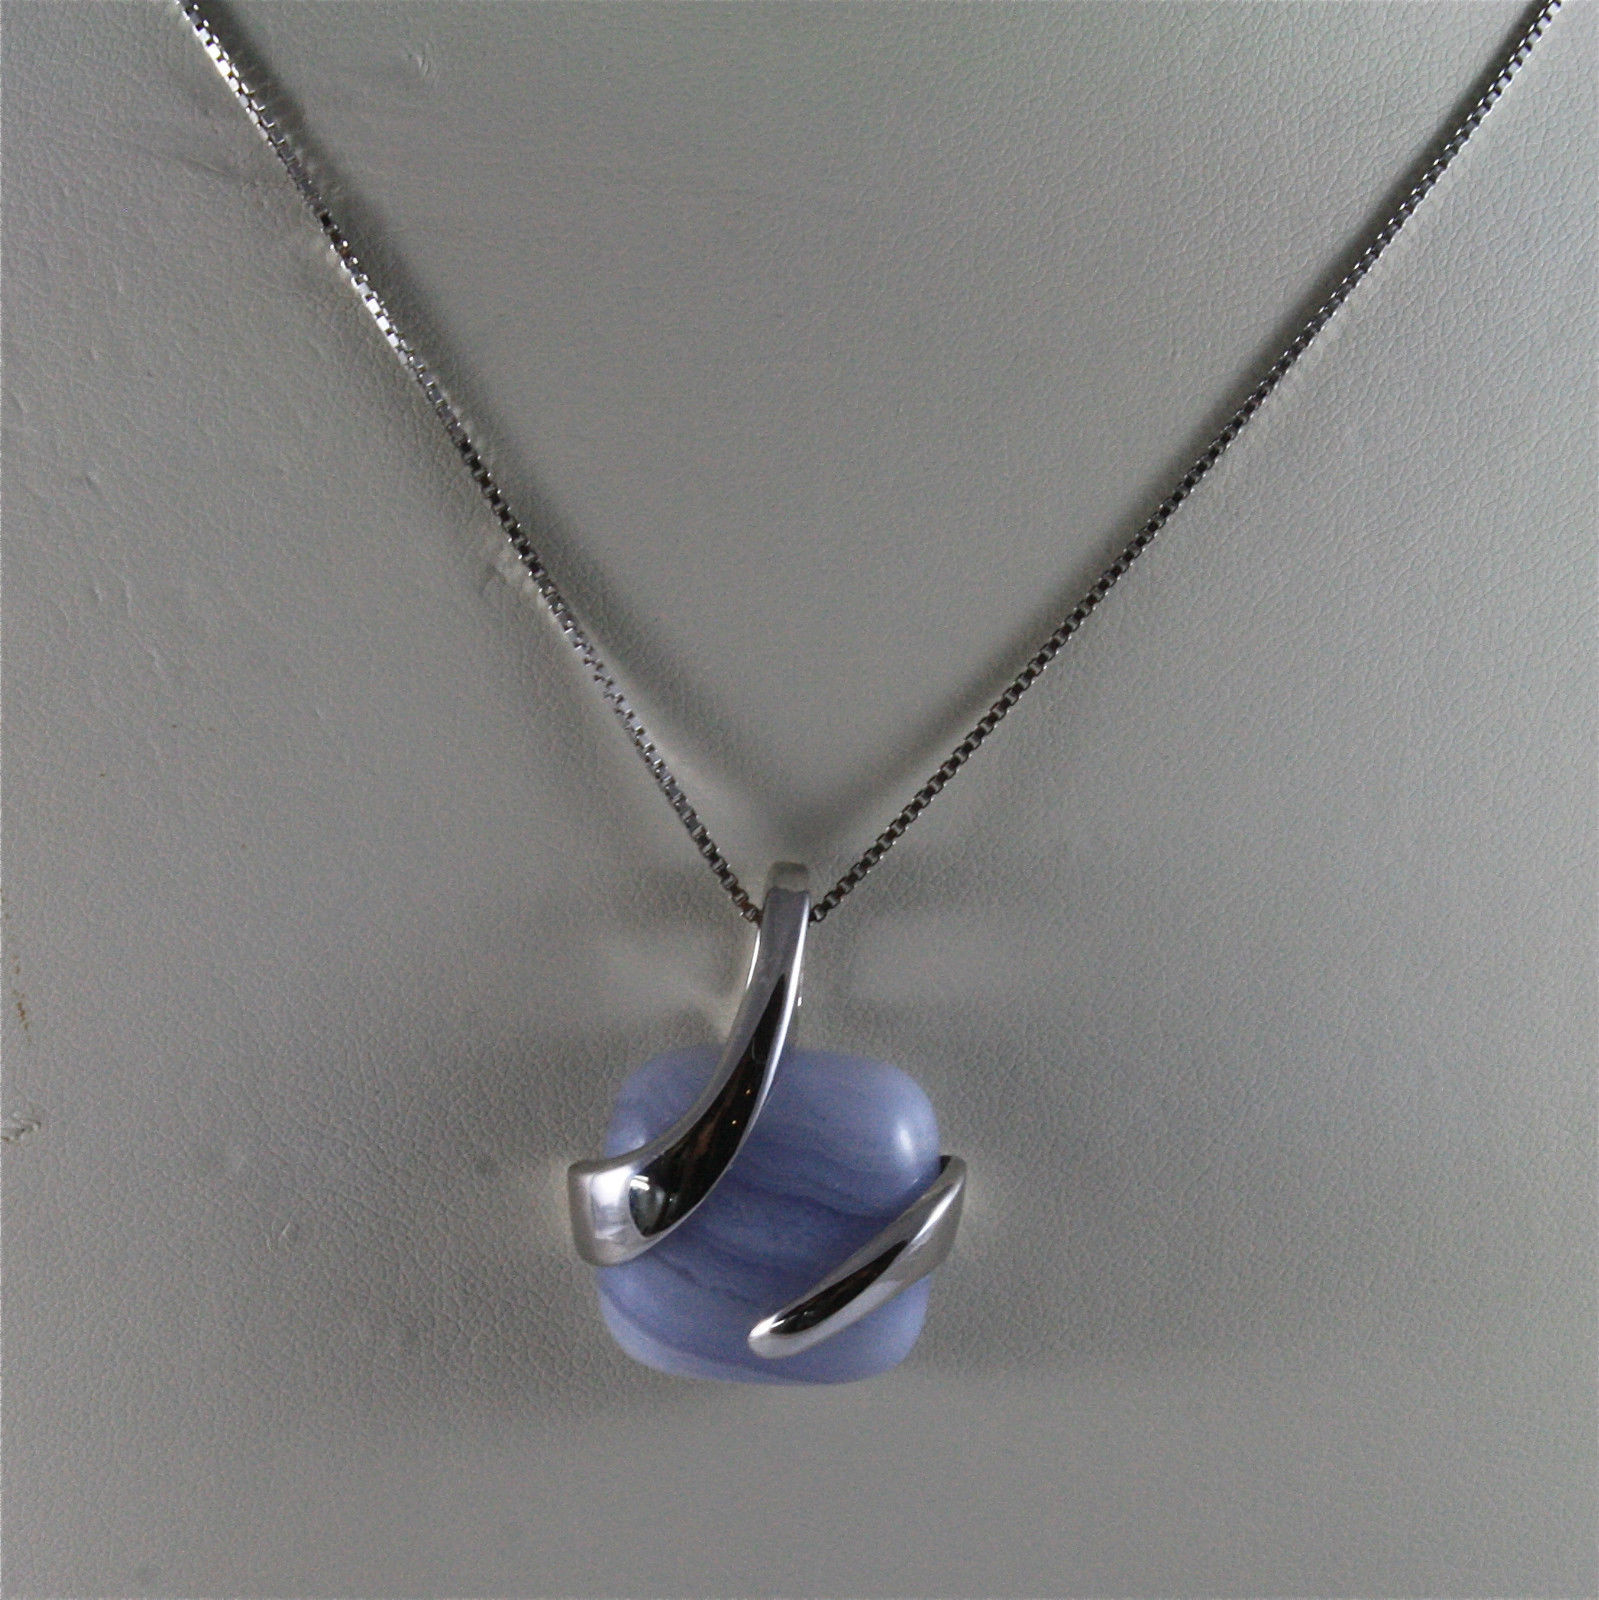 .925 SILVER RHODIUM NECKLACE 17,72 In, NATURAL BLUE AGATE PENDANT, VENETIAN MESH